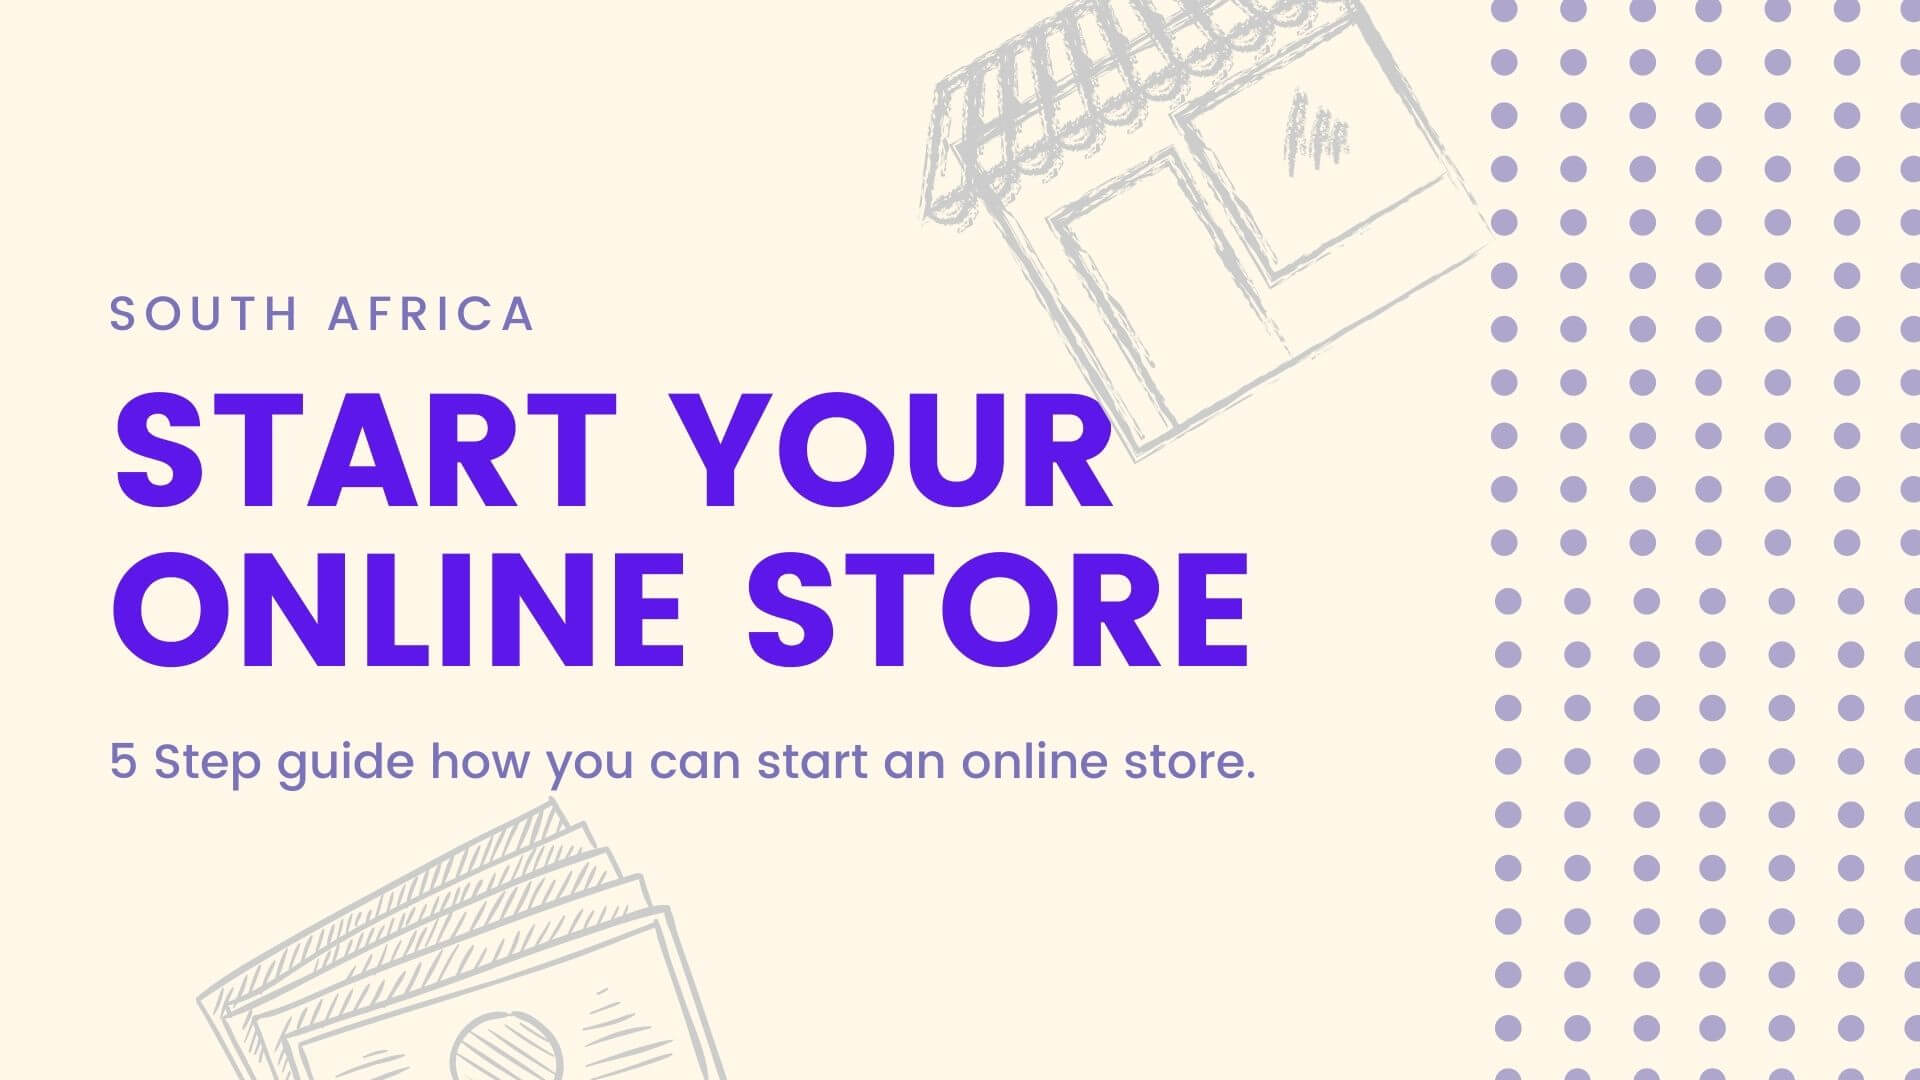 Start an online store in South Africa